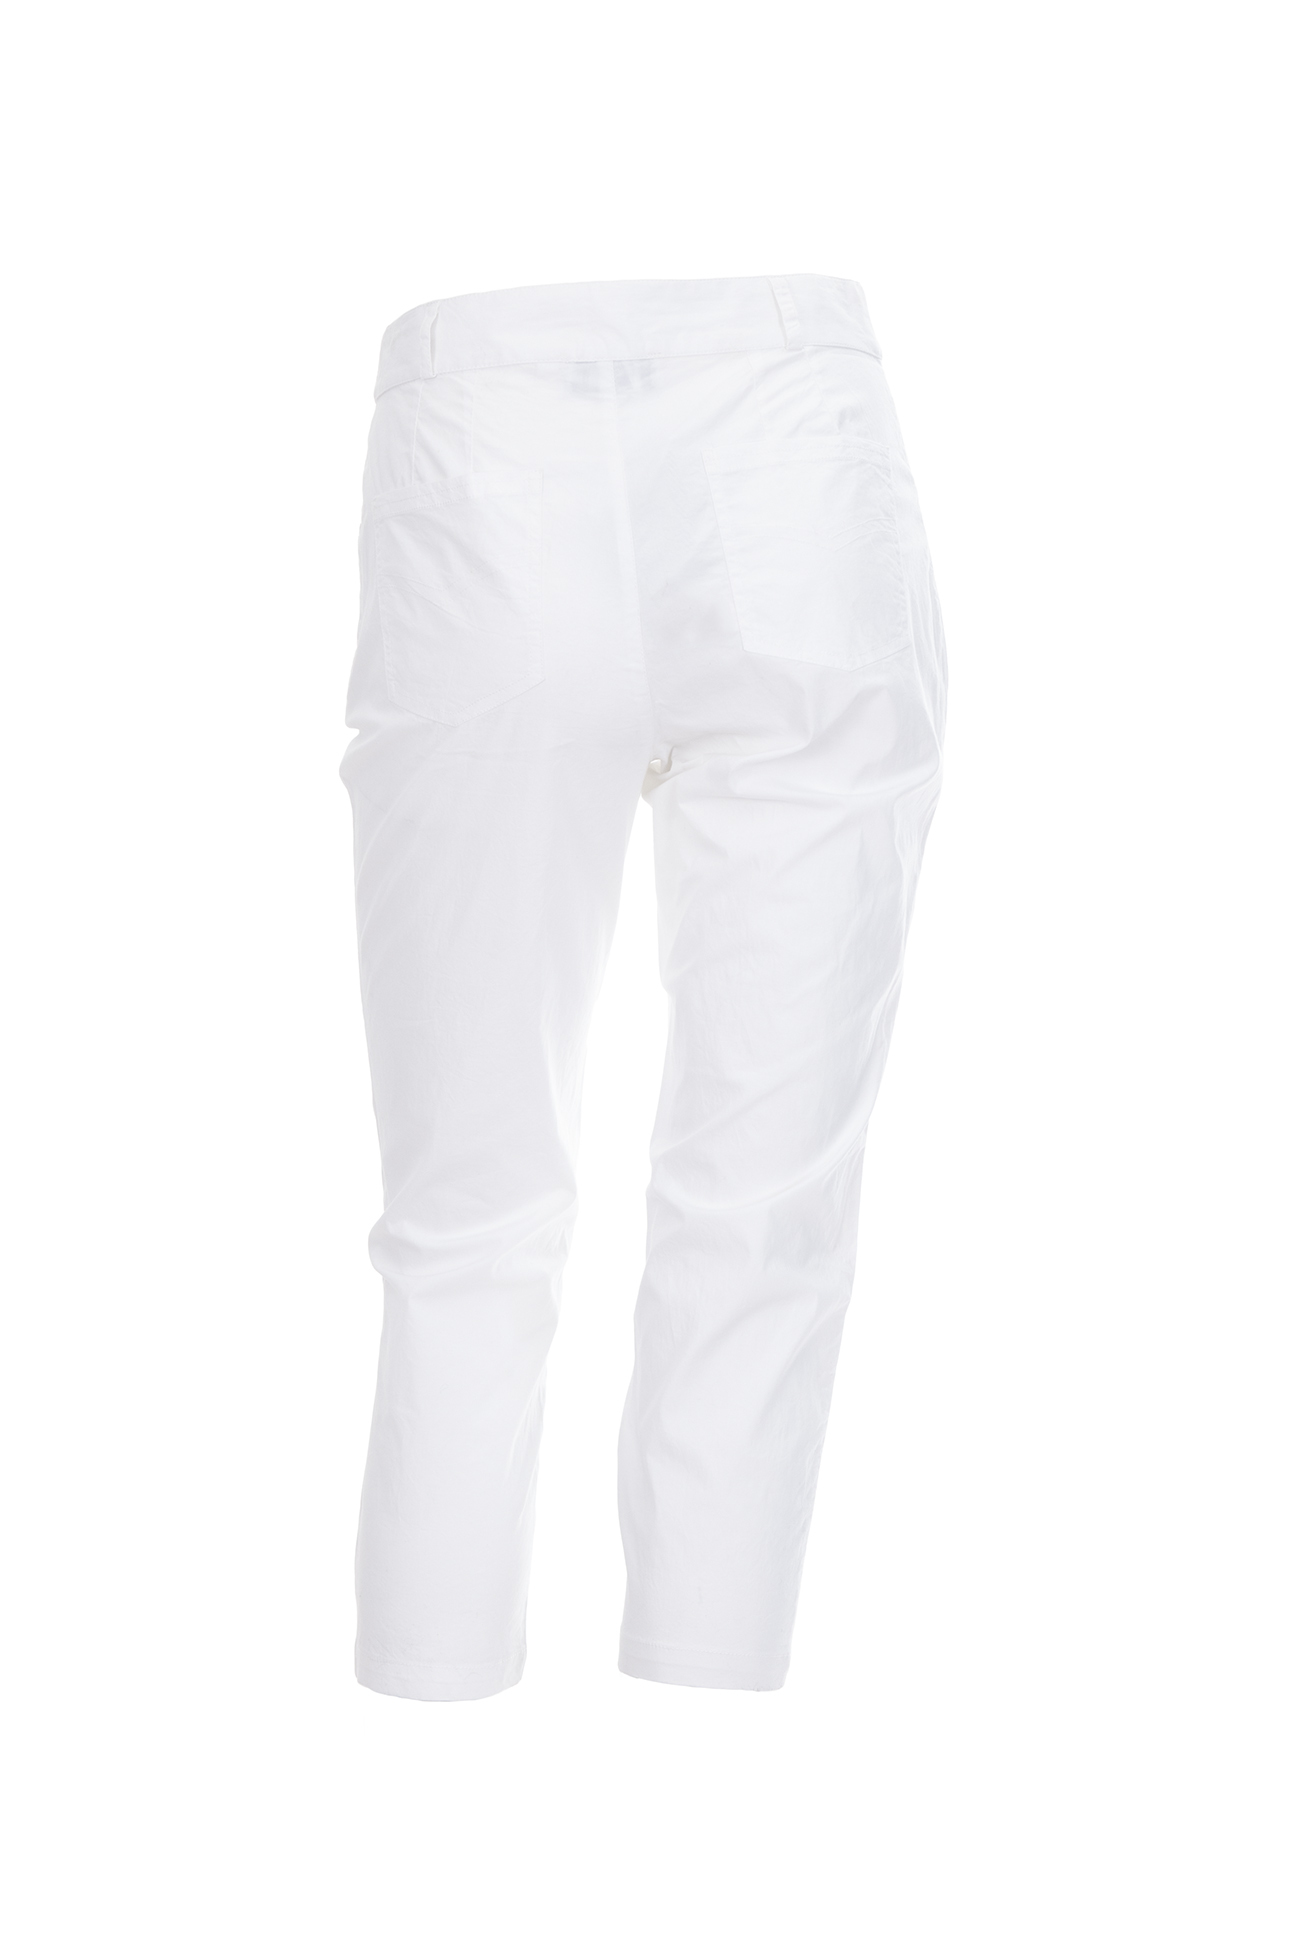 Les Fees Du Vent Couture: Midnight Orchid Cropped Pant (In Black & White)